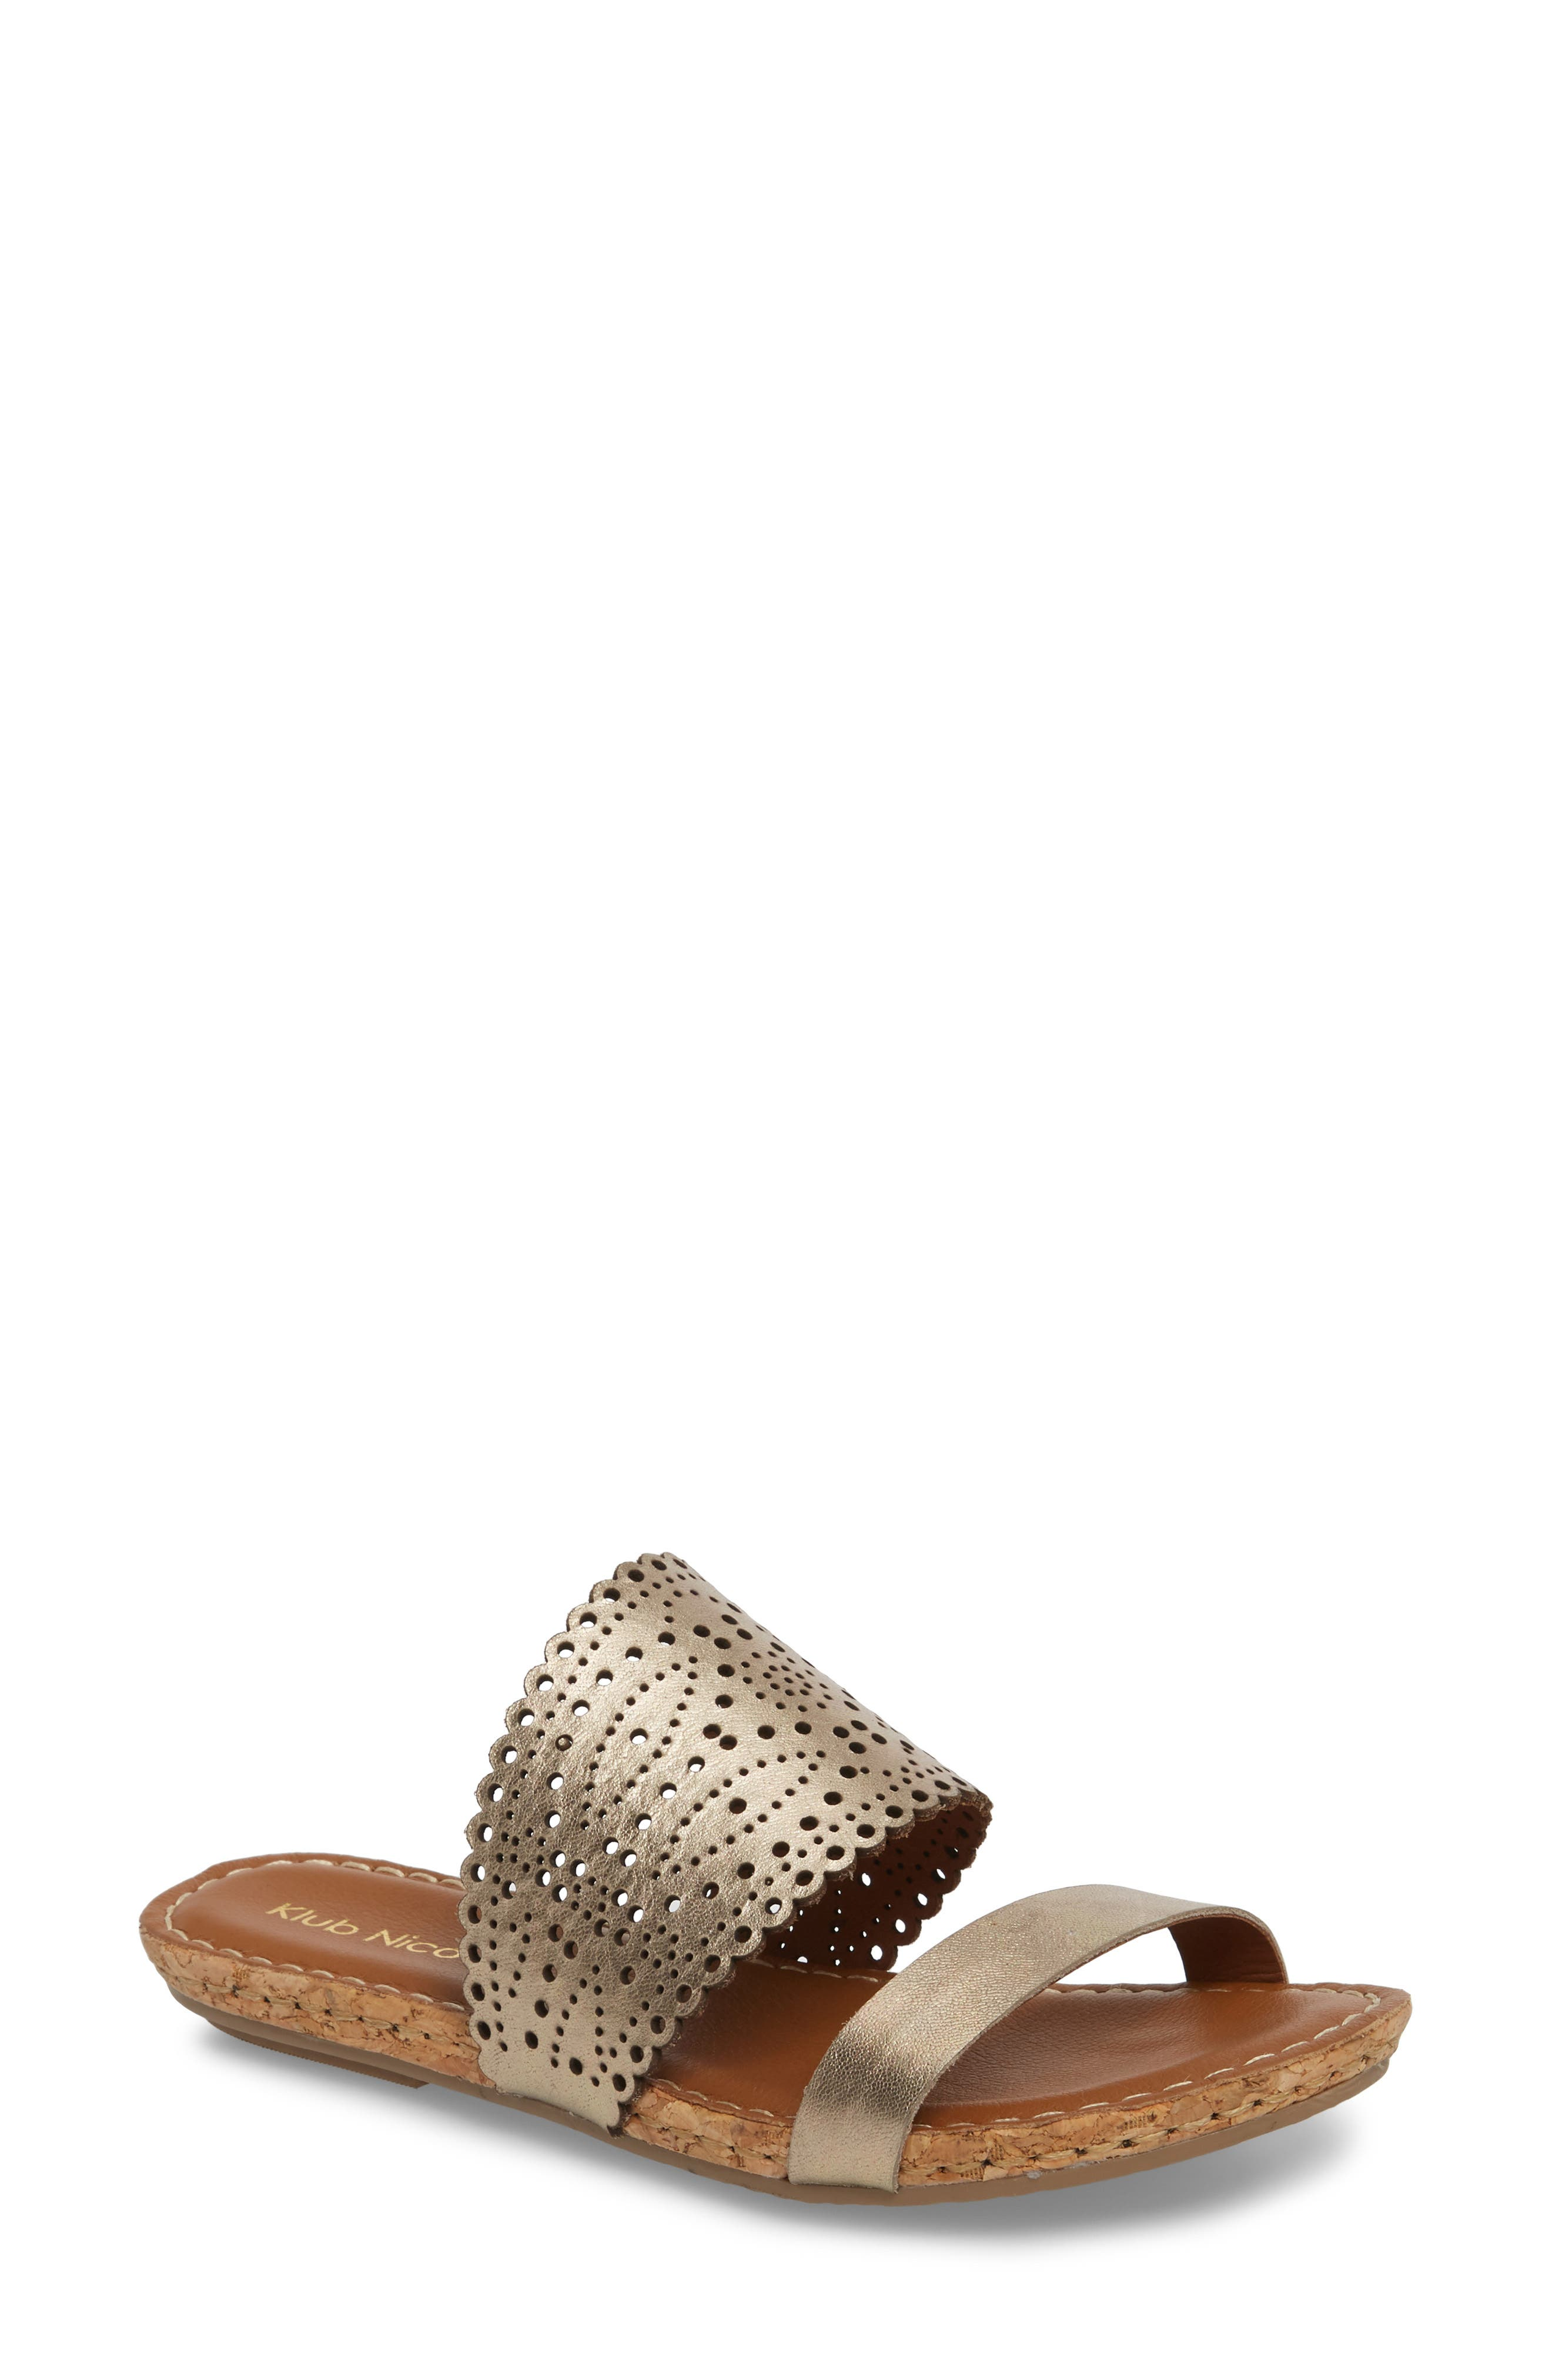 Ginette Perforated Slide Sandal,                         Main,                         color, PEWTER LEATHER